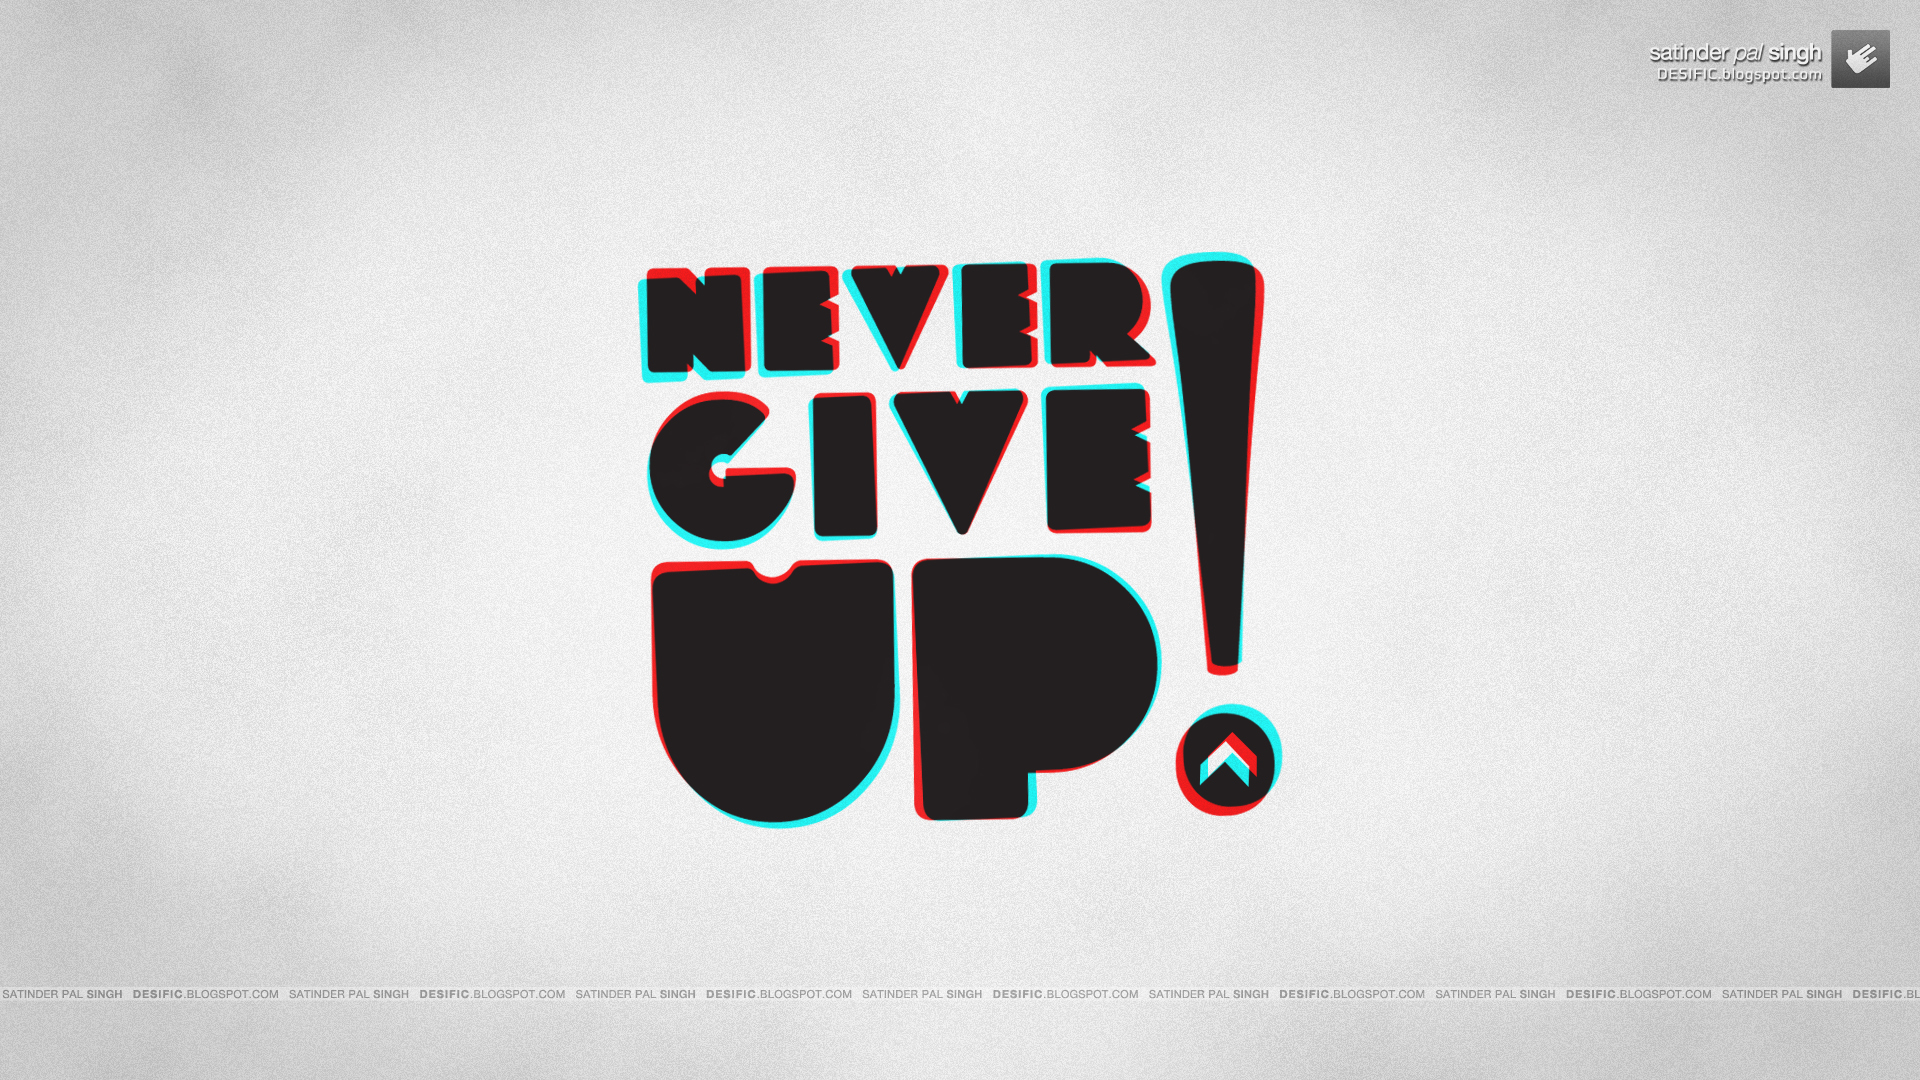 never never give up Lyrics to 'never give up' by sia i've battled demons that won't let me sleep / called to the sea but she abandoned me / but i won't never give up, no, never.